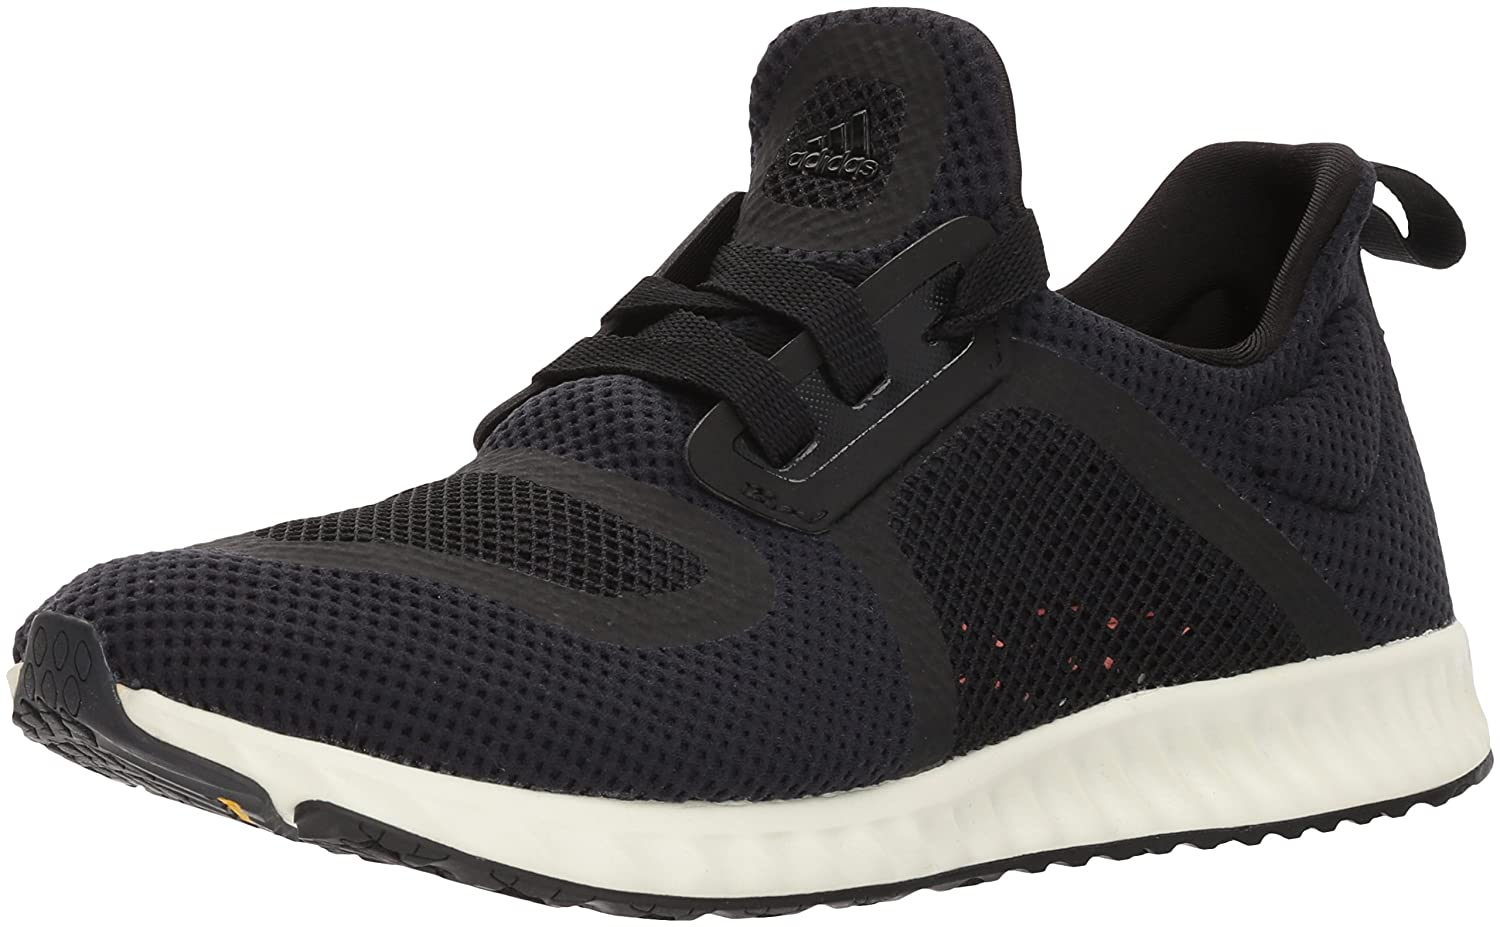 adidas Originals Women's Edge Lux Clima Running Shoe B0714BMD81 12 B(M) US|Core Black/Core Black/White Tint